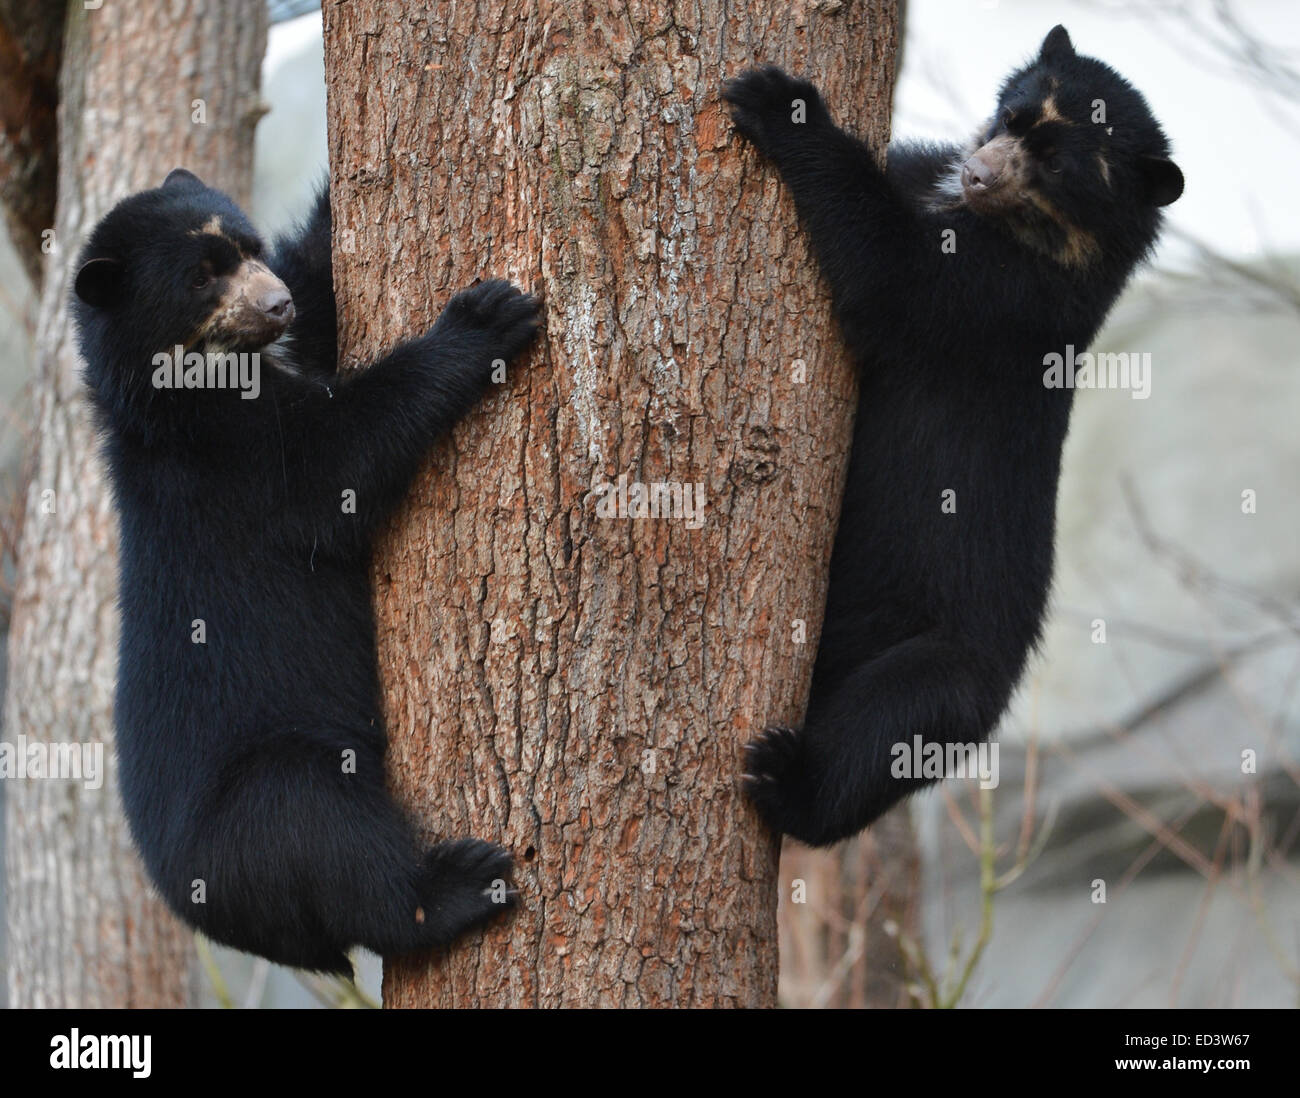 Andean bear twins Tupa and Sonco climb up a tree in the zoo in Frankfurt am Main, Germany, 25 December 2014. The Stock Photo